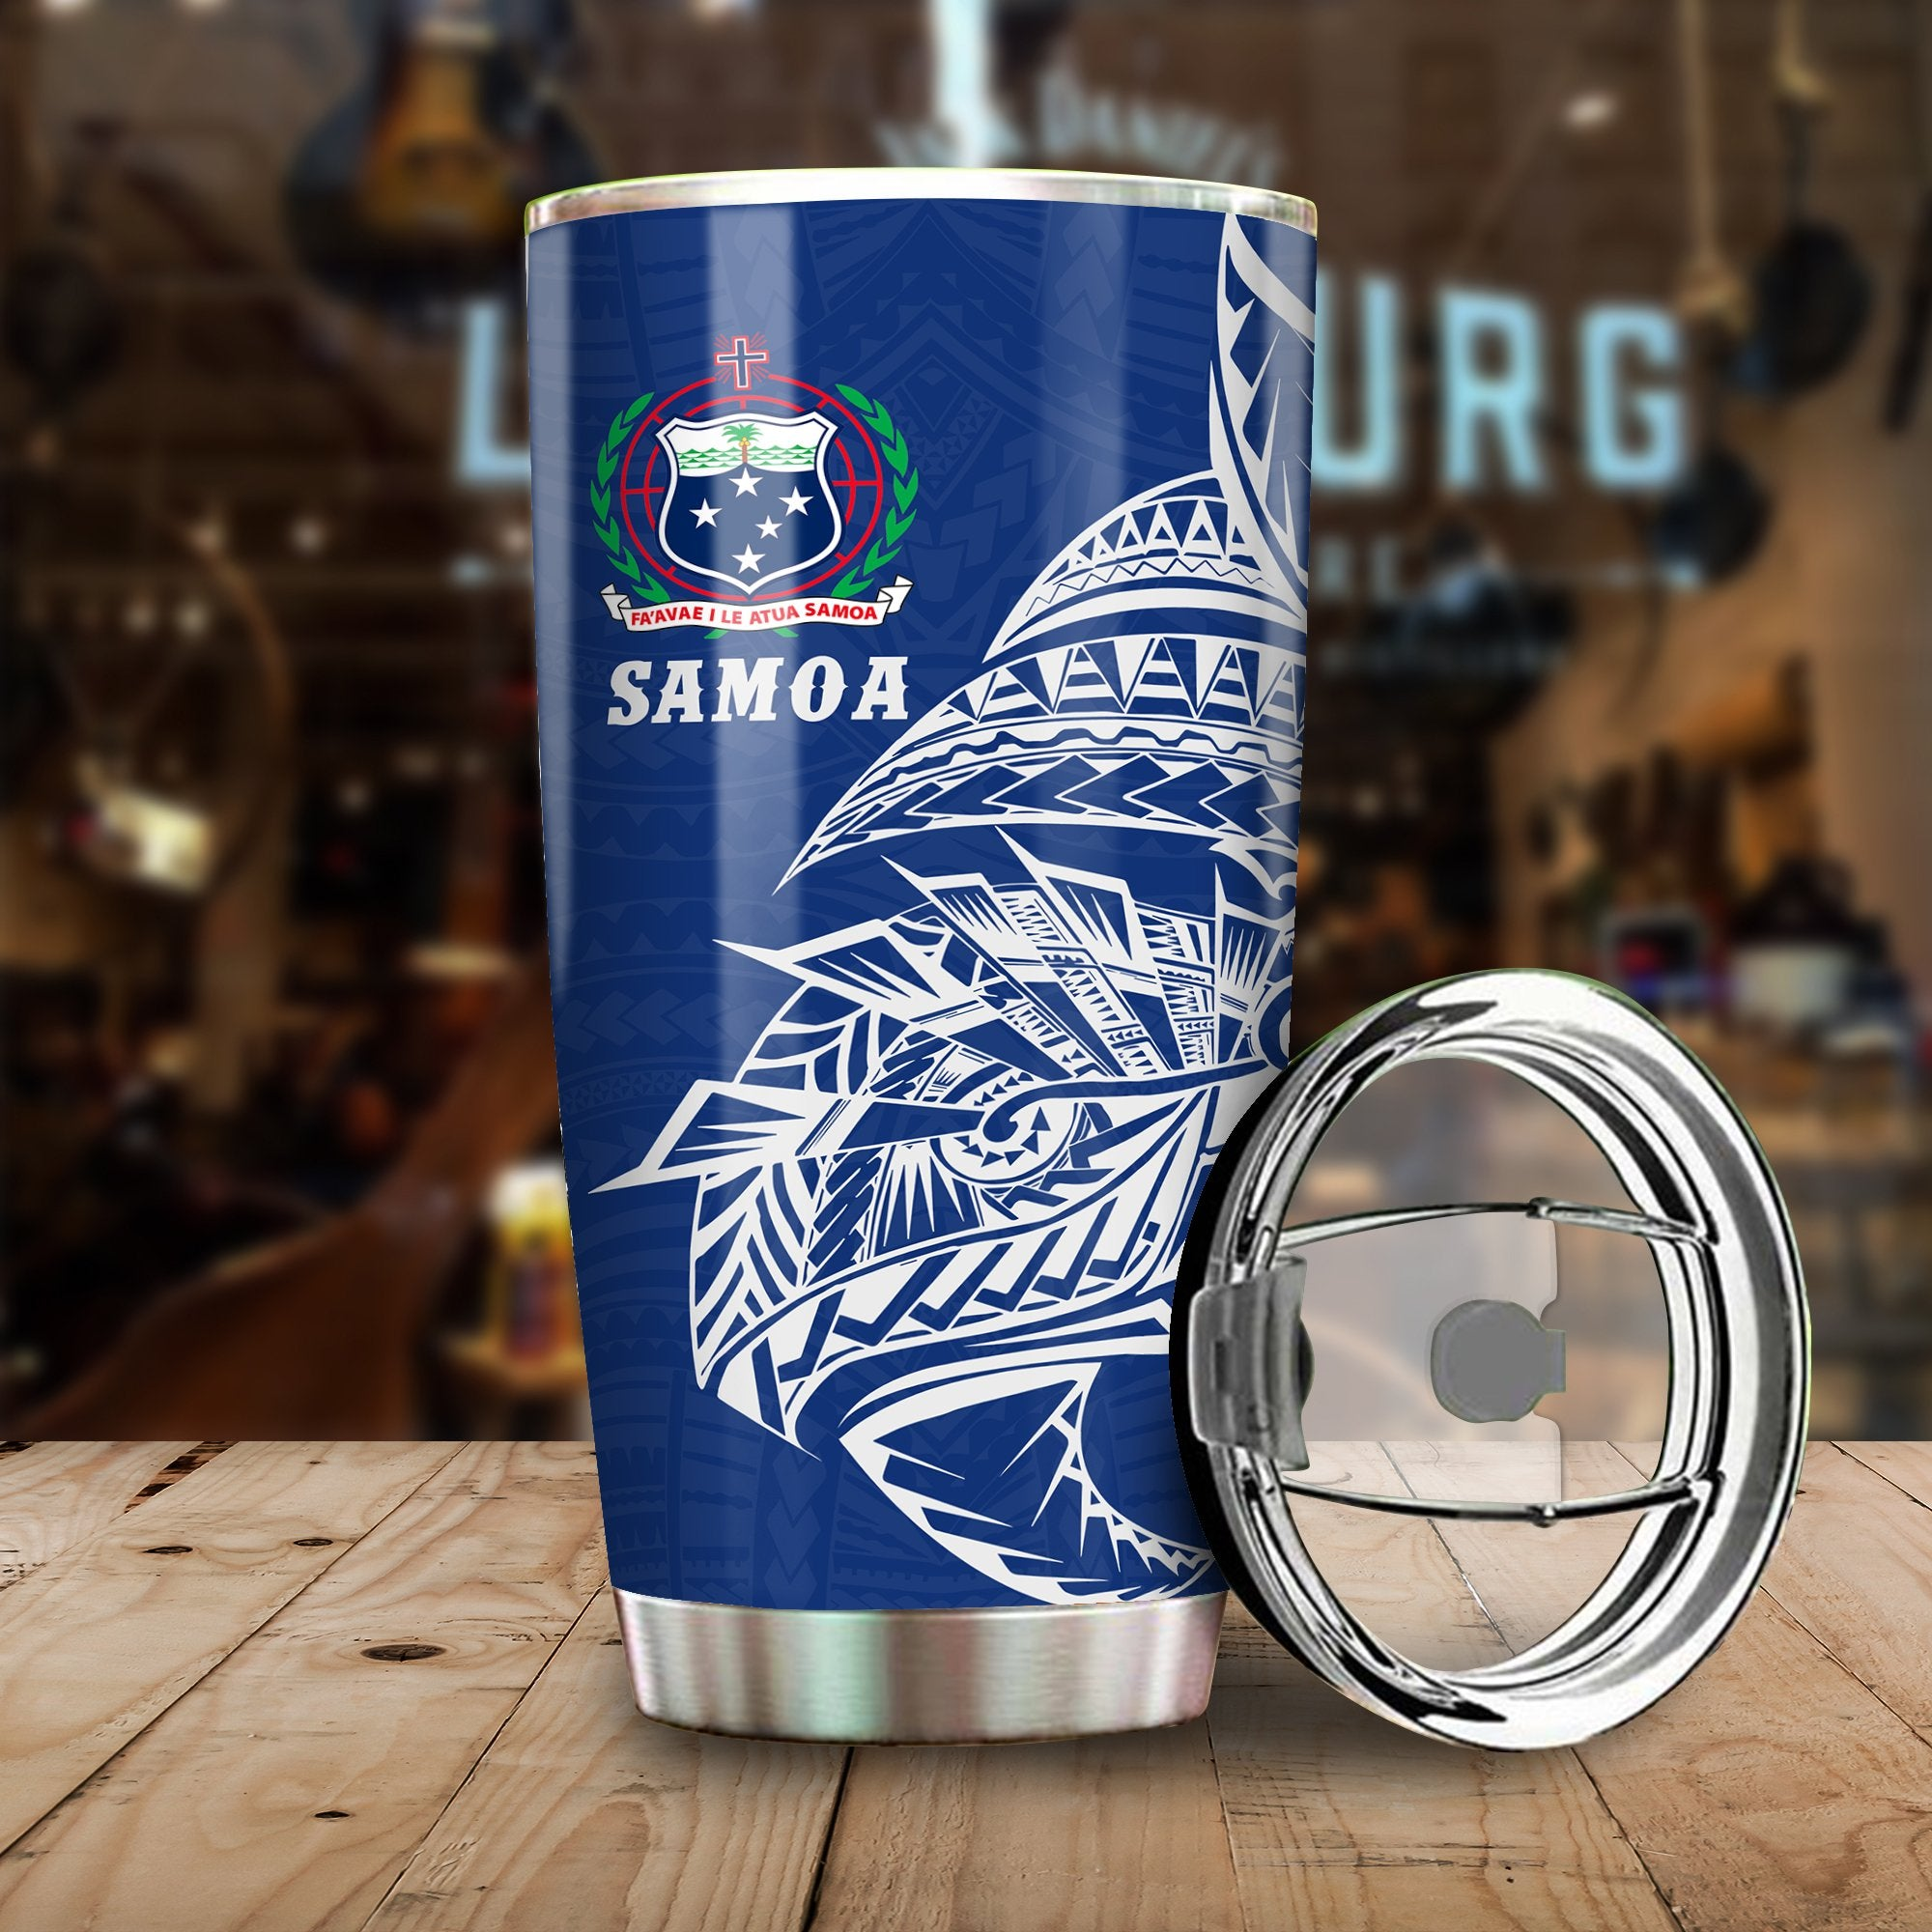 Samoa Rugby  - Samoa Coat Of Arms Polynesian Tattoo Style All Over Print Tumbler